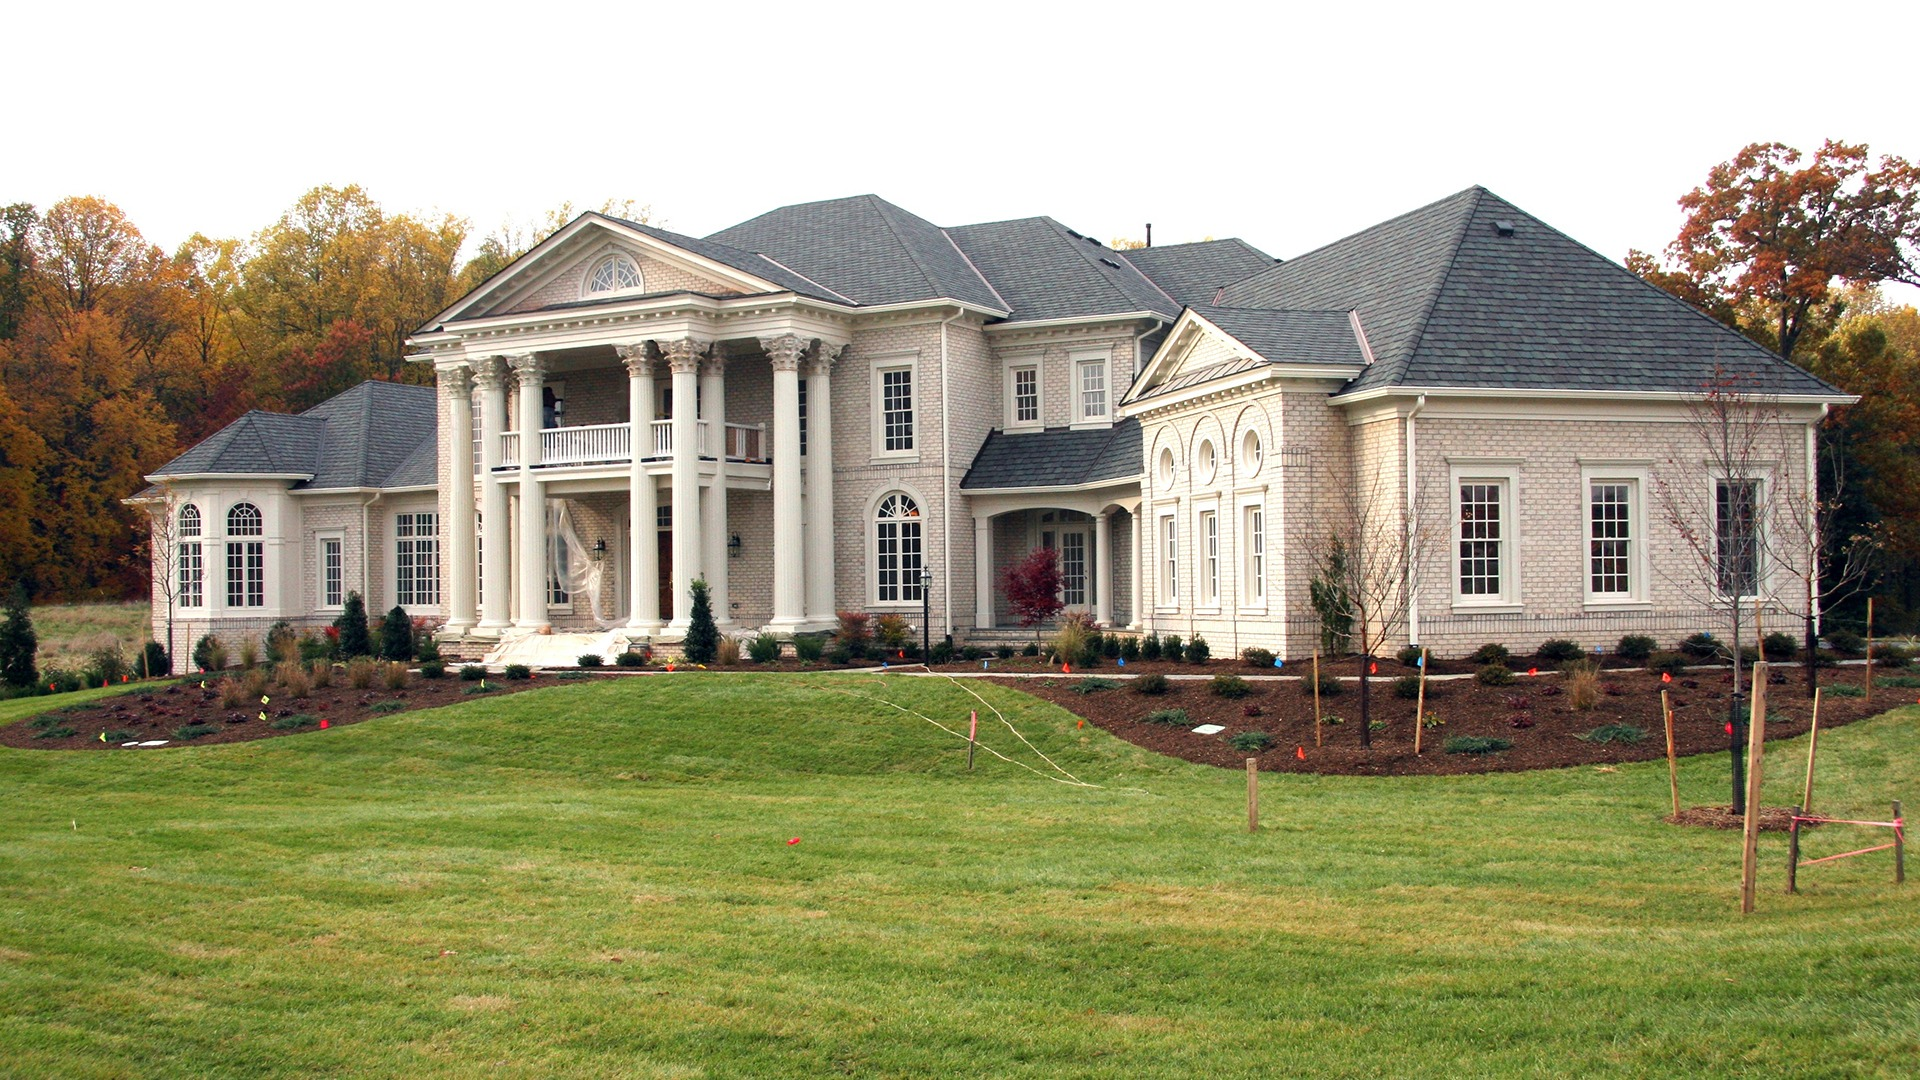 Grovemont Wentworth - Front Elevation with Columns